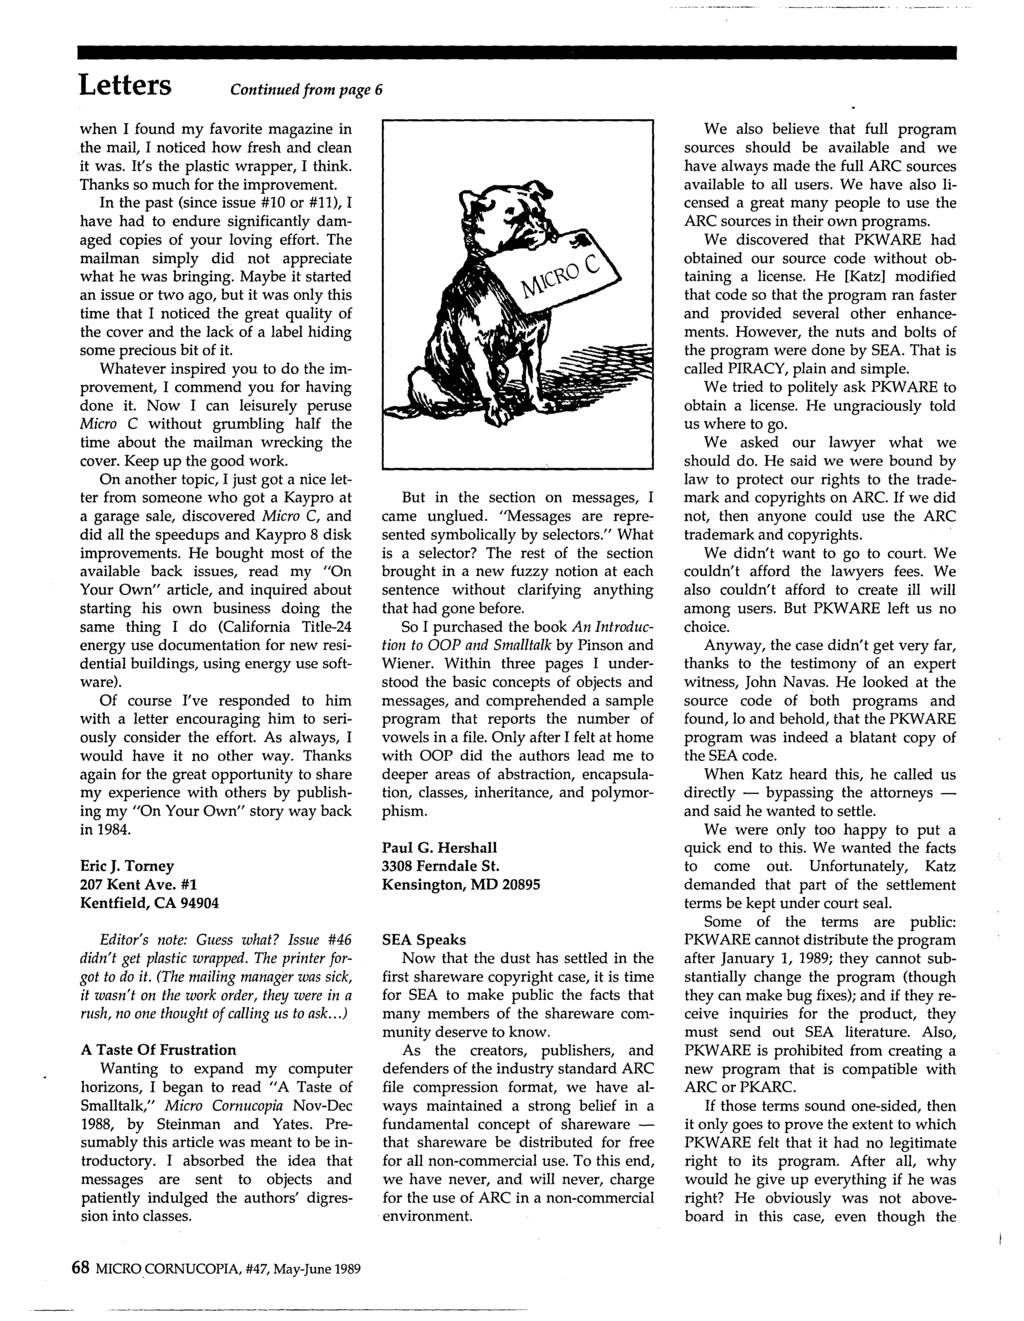 Robotics And More Writing Code For Two Operating Systems J 0 Urn Published November 7 2010 At 1536 X 2048 In Structured Wire Panel Letters Continued From Page 6 When I Found My Favorite Magazine The Mail